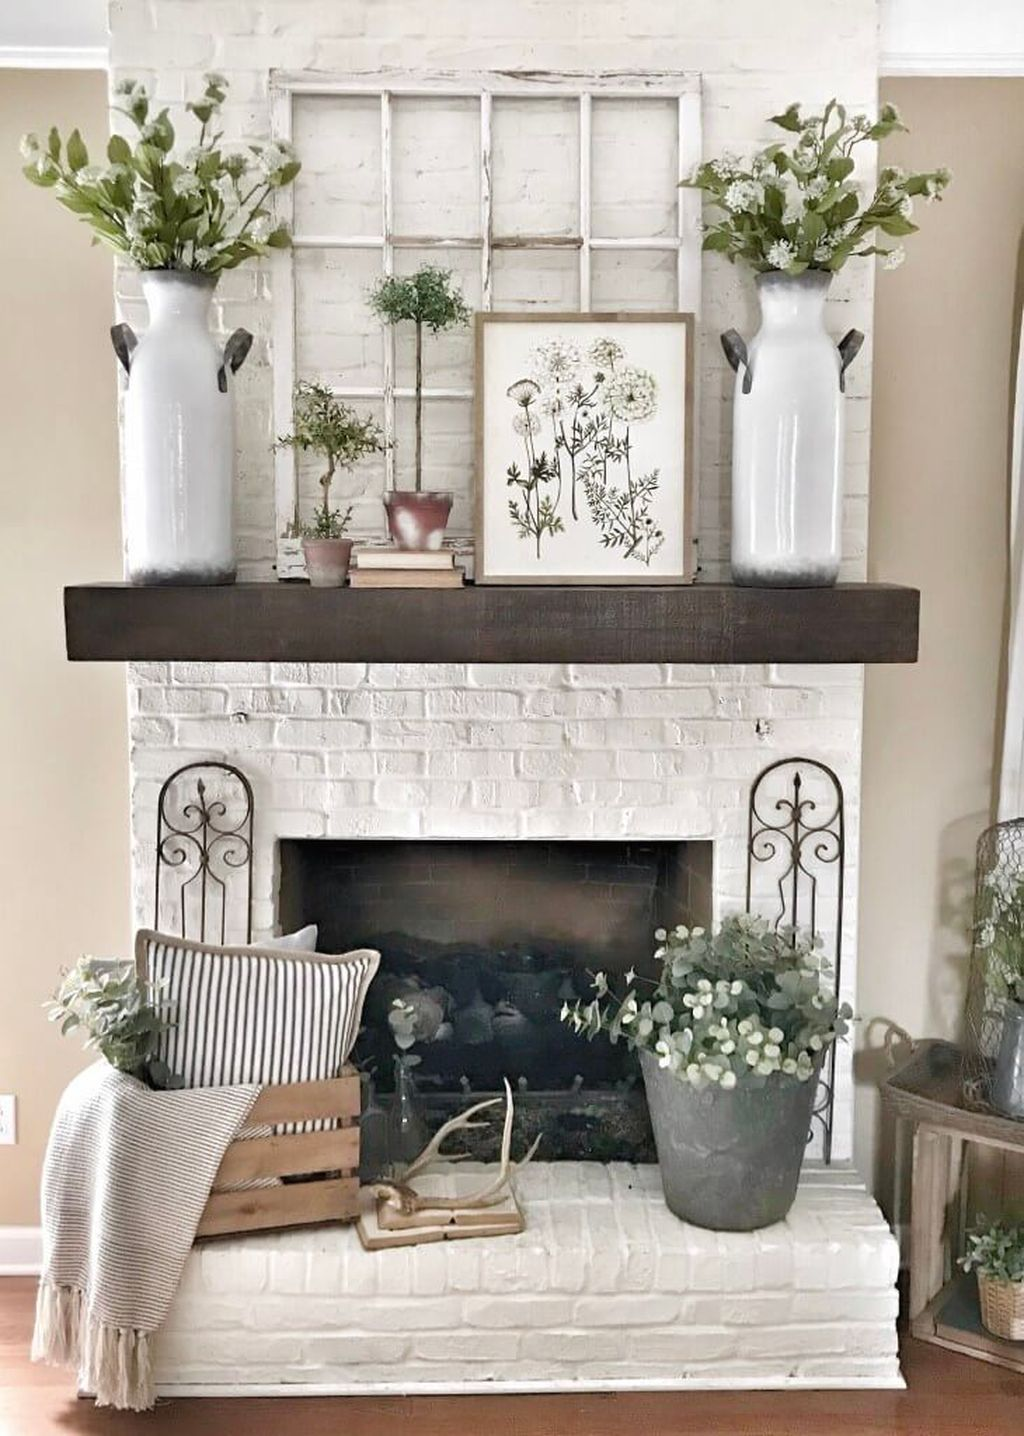 Admirable Farmhouse Living Room Decor Ideas 15